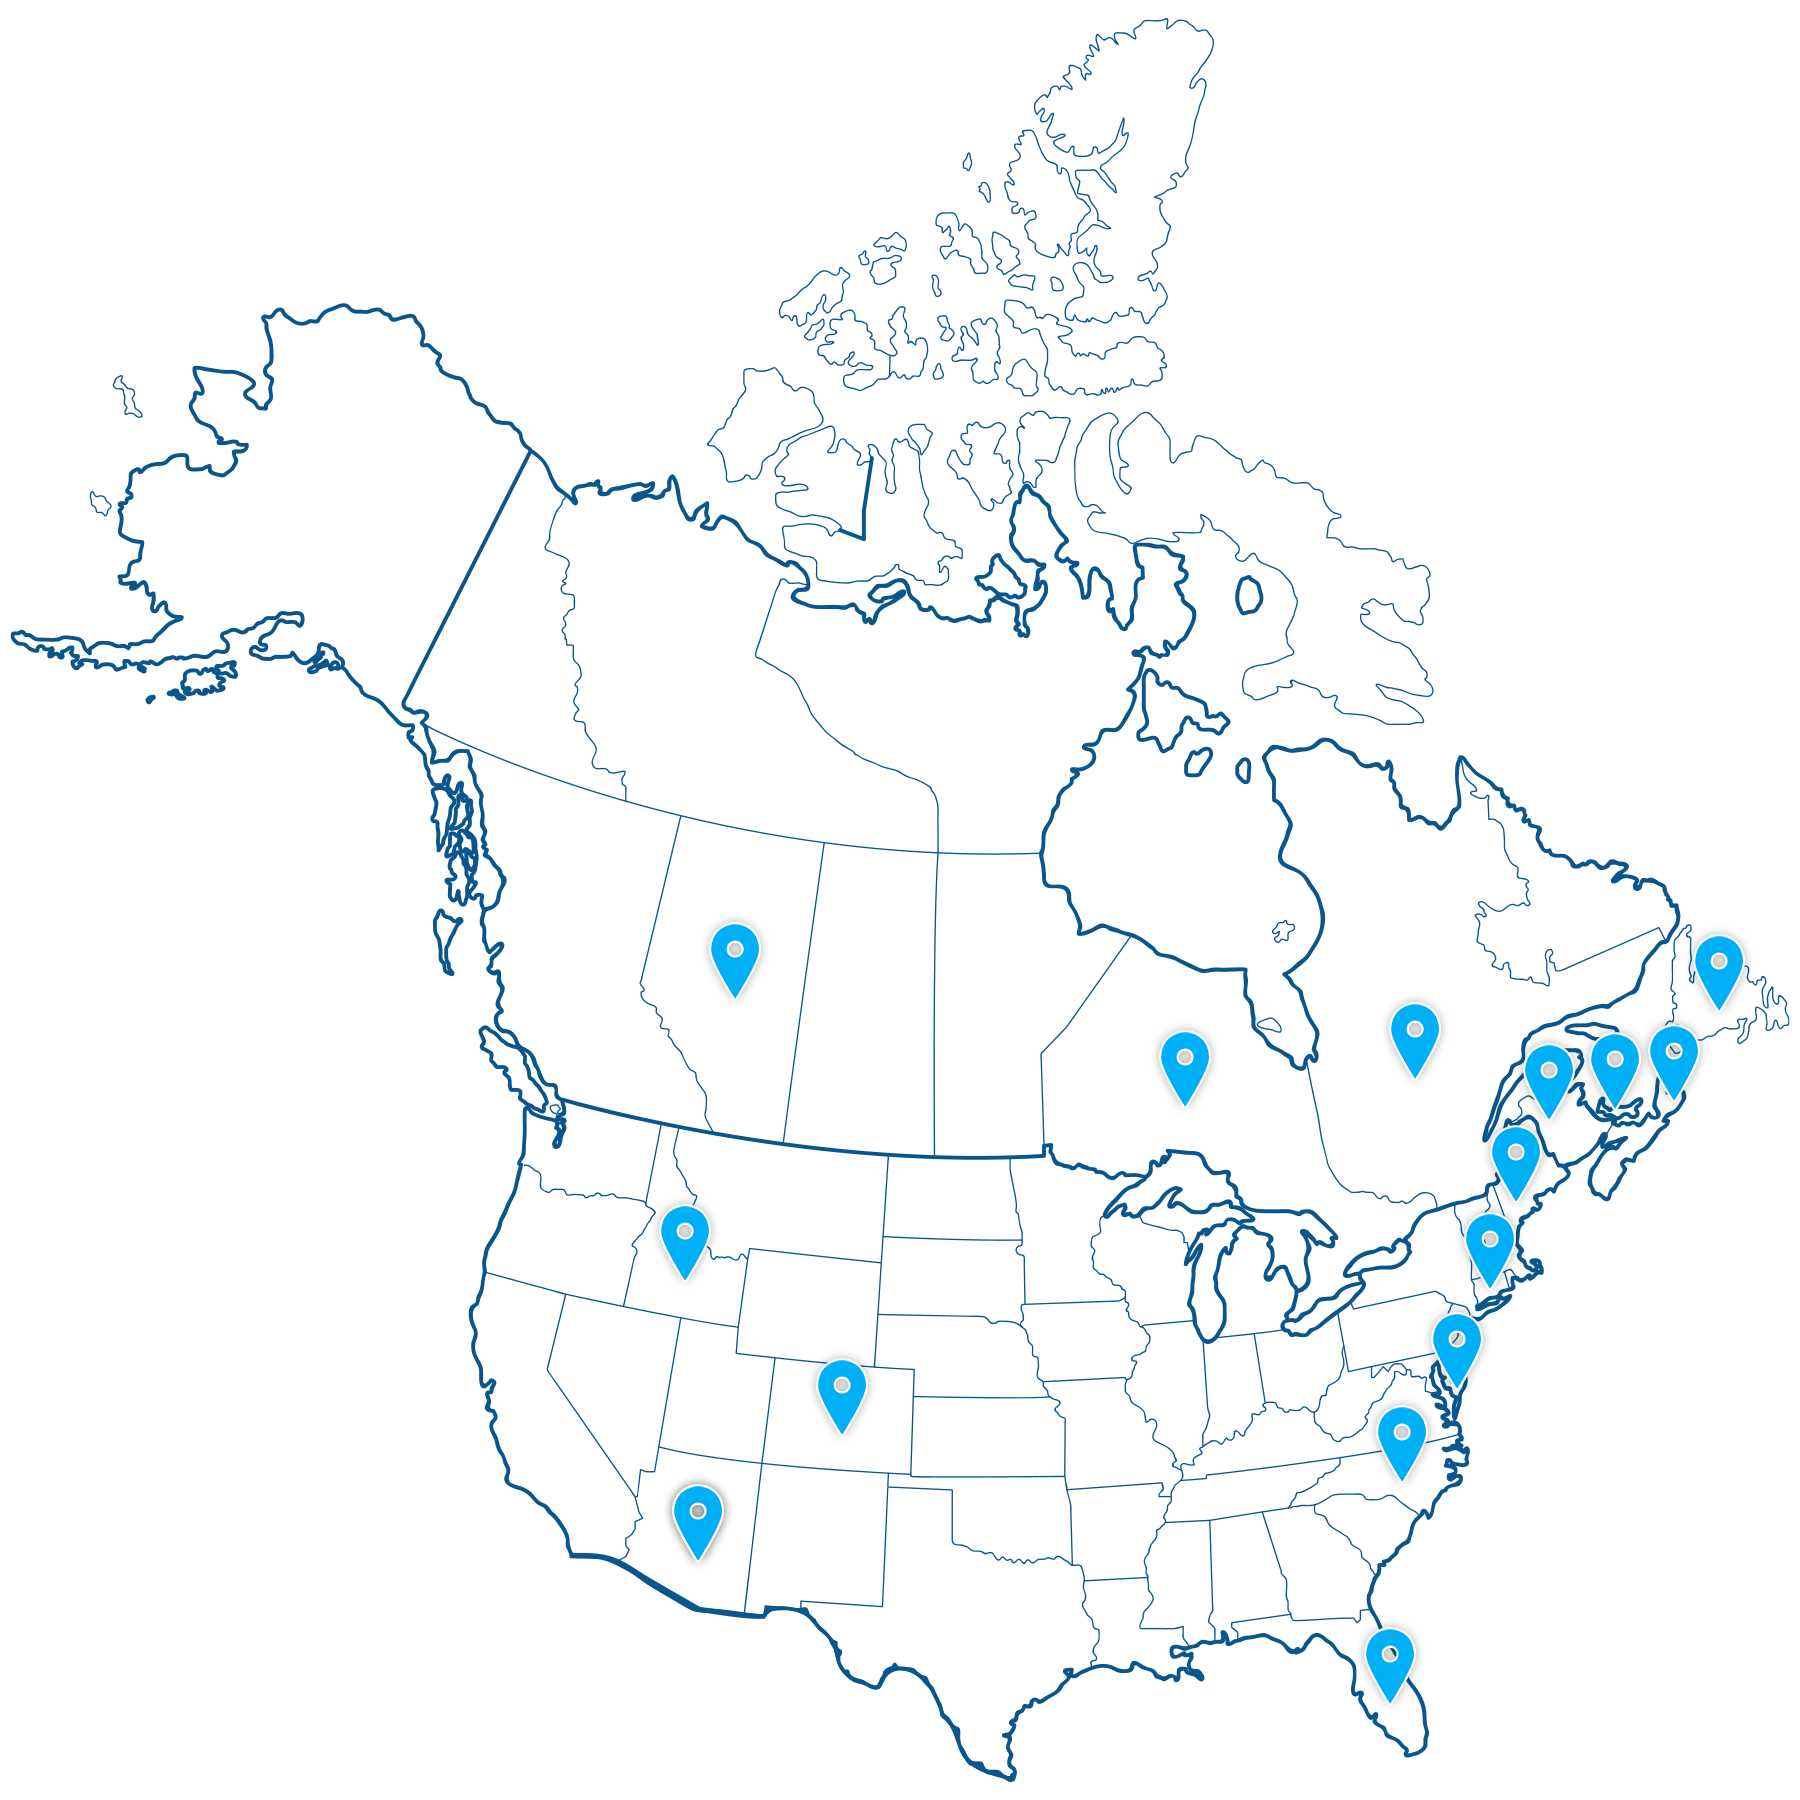 map - PEI Bag Co. works with companies across North America